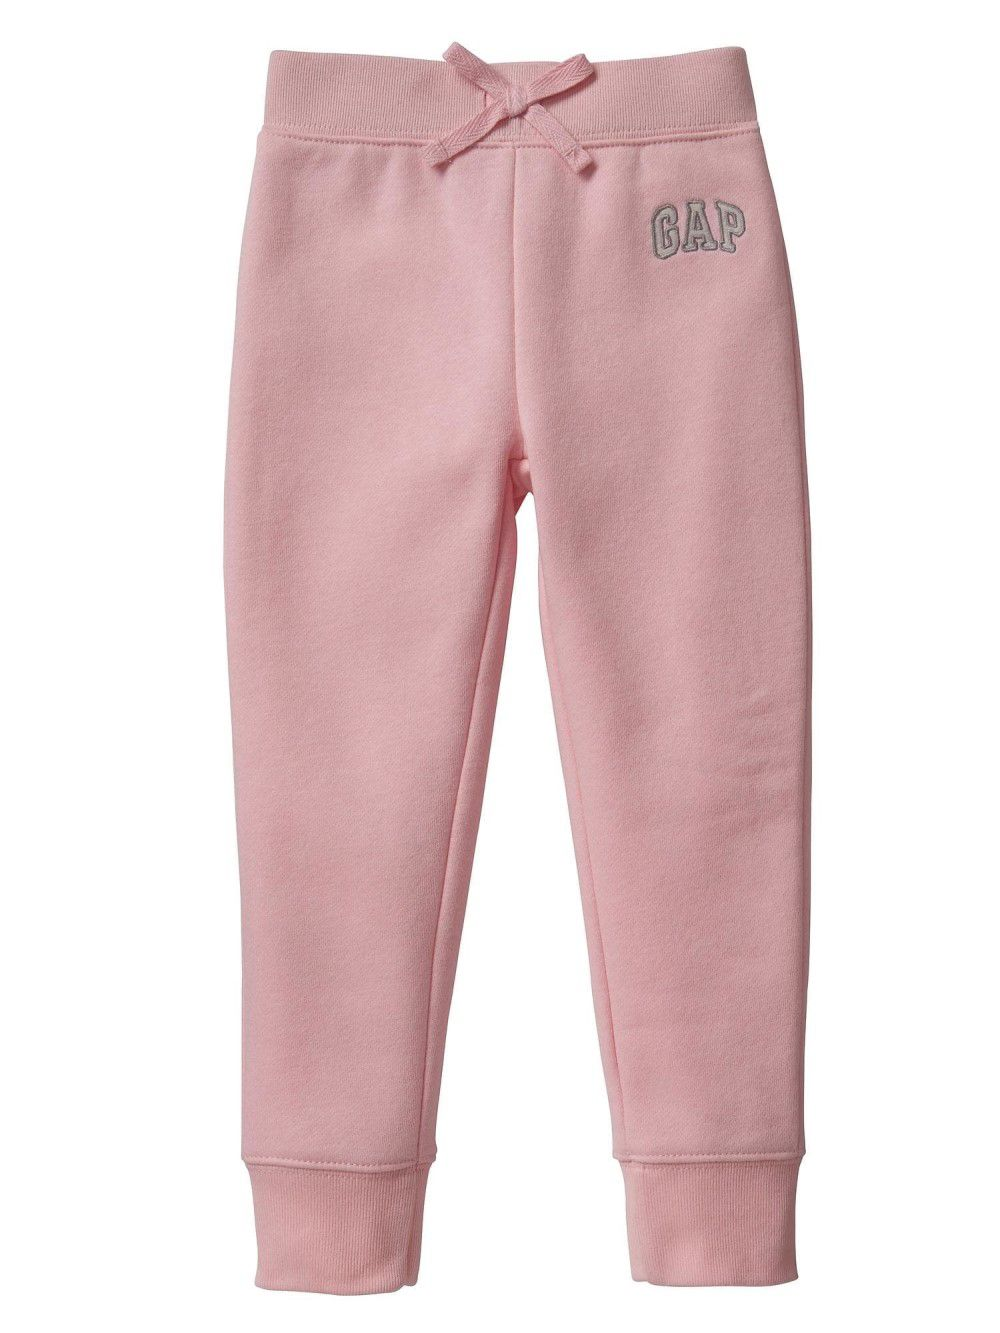 Calça Moletom GAP Rosa Baby Girl